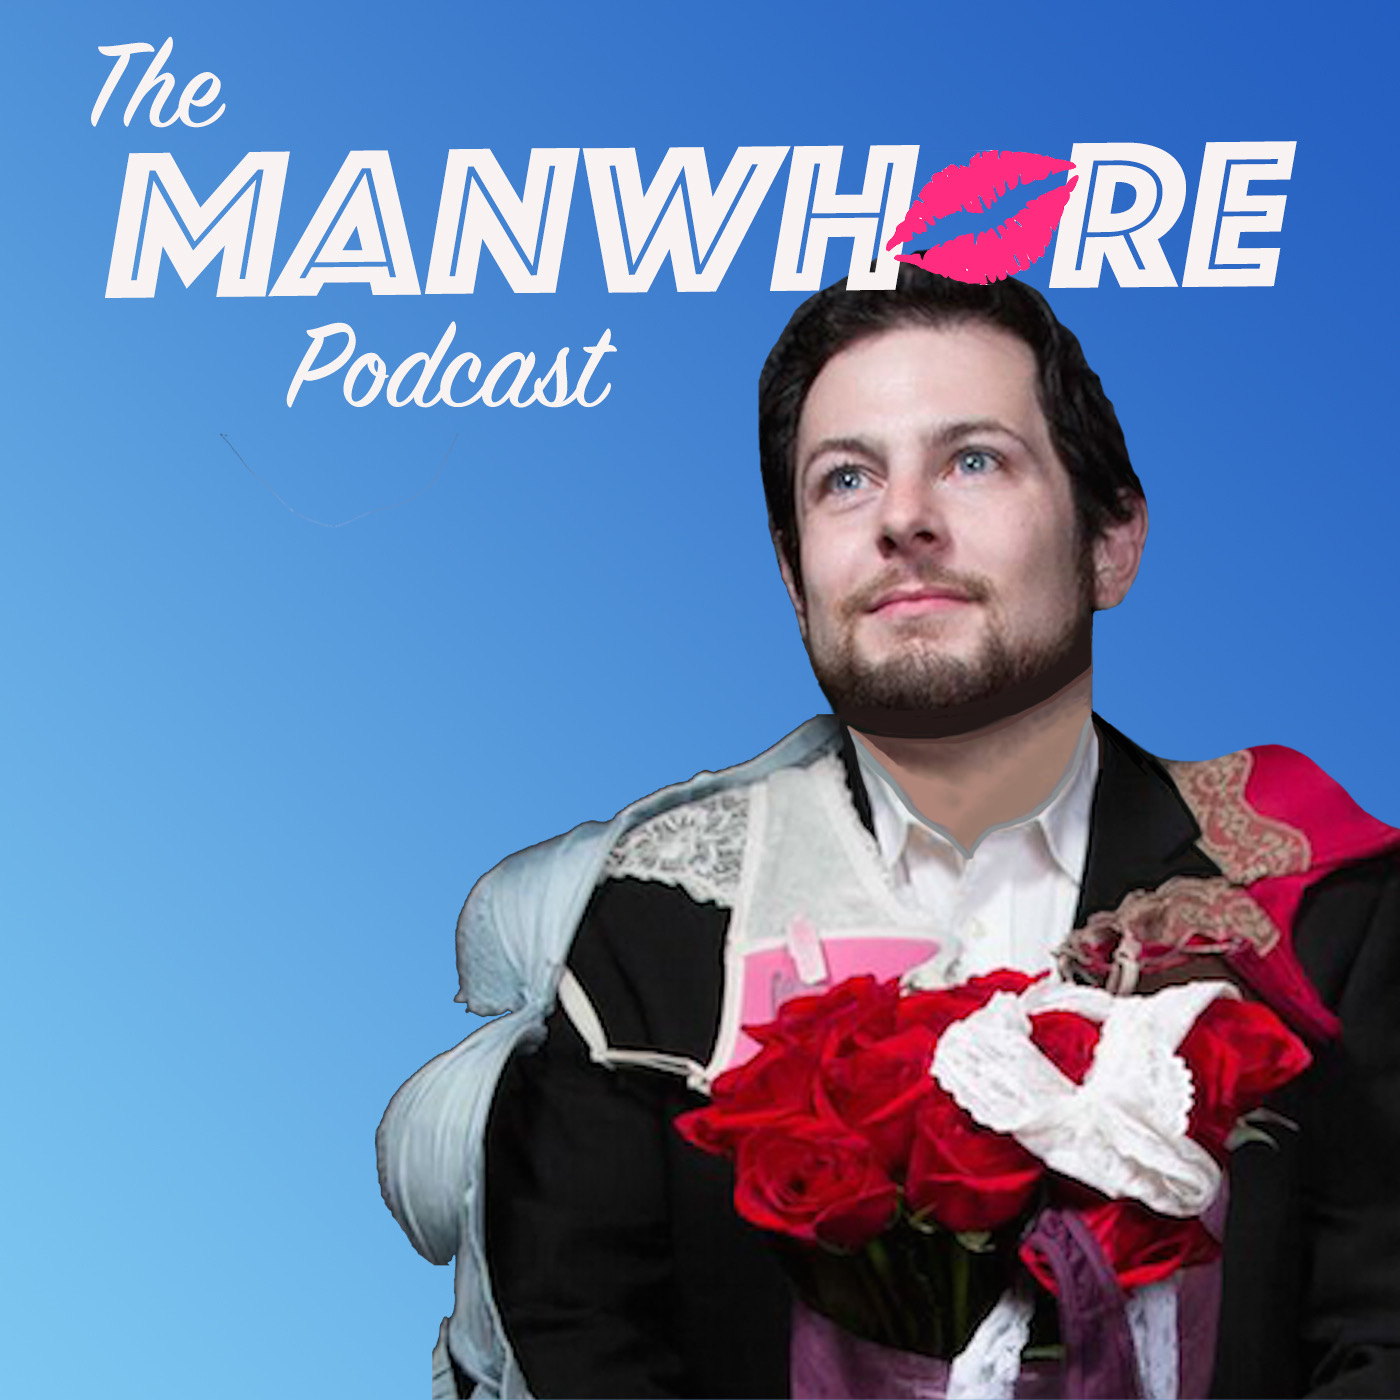 The Manwhore Podcast: A Sex-Positive Quest - Ep. 361: What Is Attachment Theory? with Maya Diamond